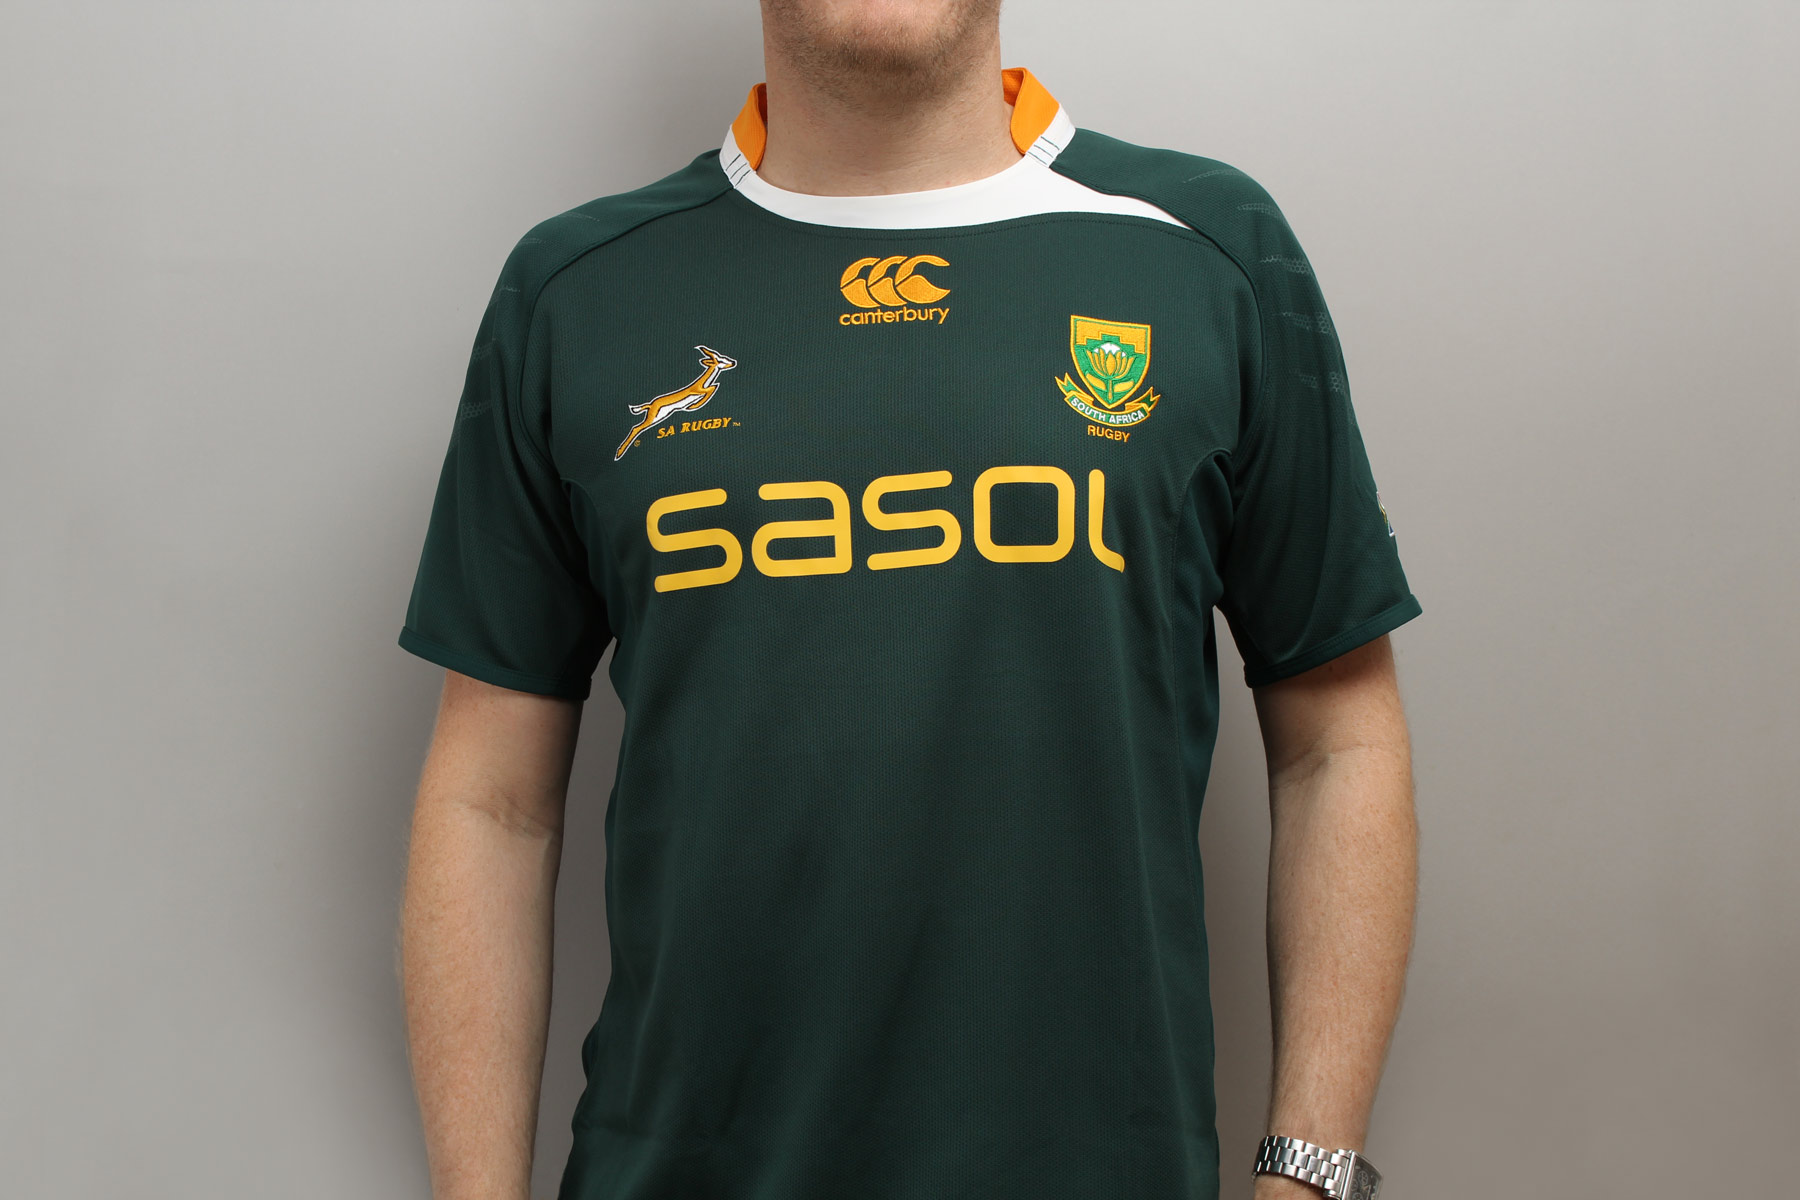 Sasol, although a massive multinational, has its origins in South Africa. Turn the TV channel to any international rugby game and you will see their sponsorship emblazoned across the South African kit.